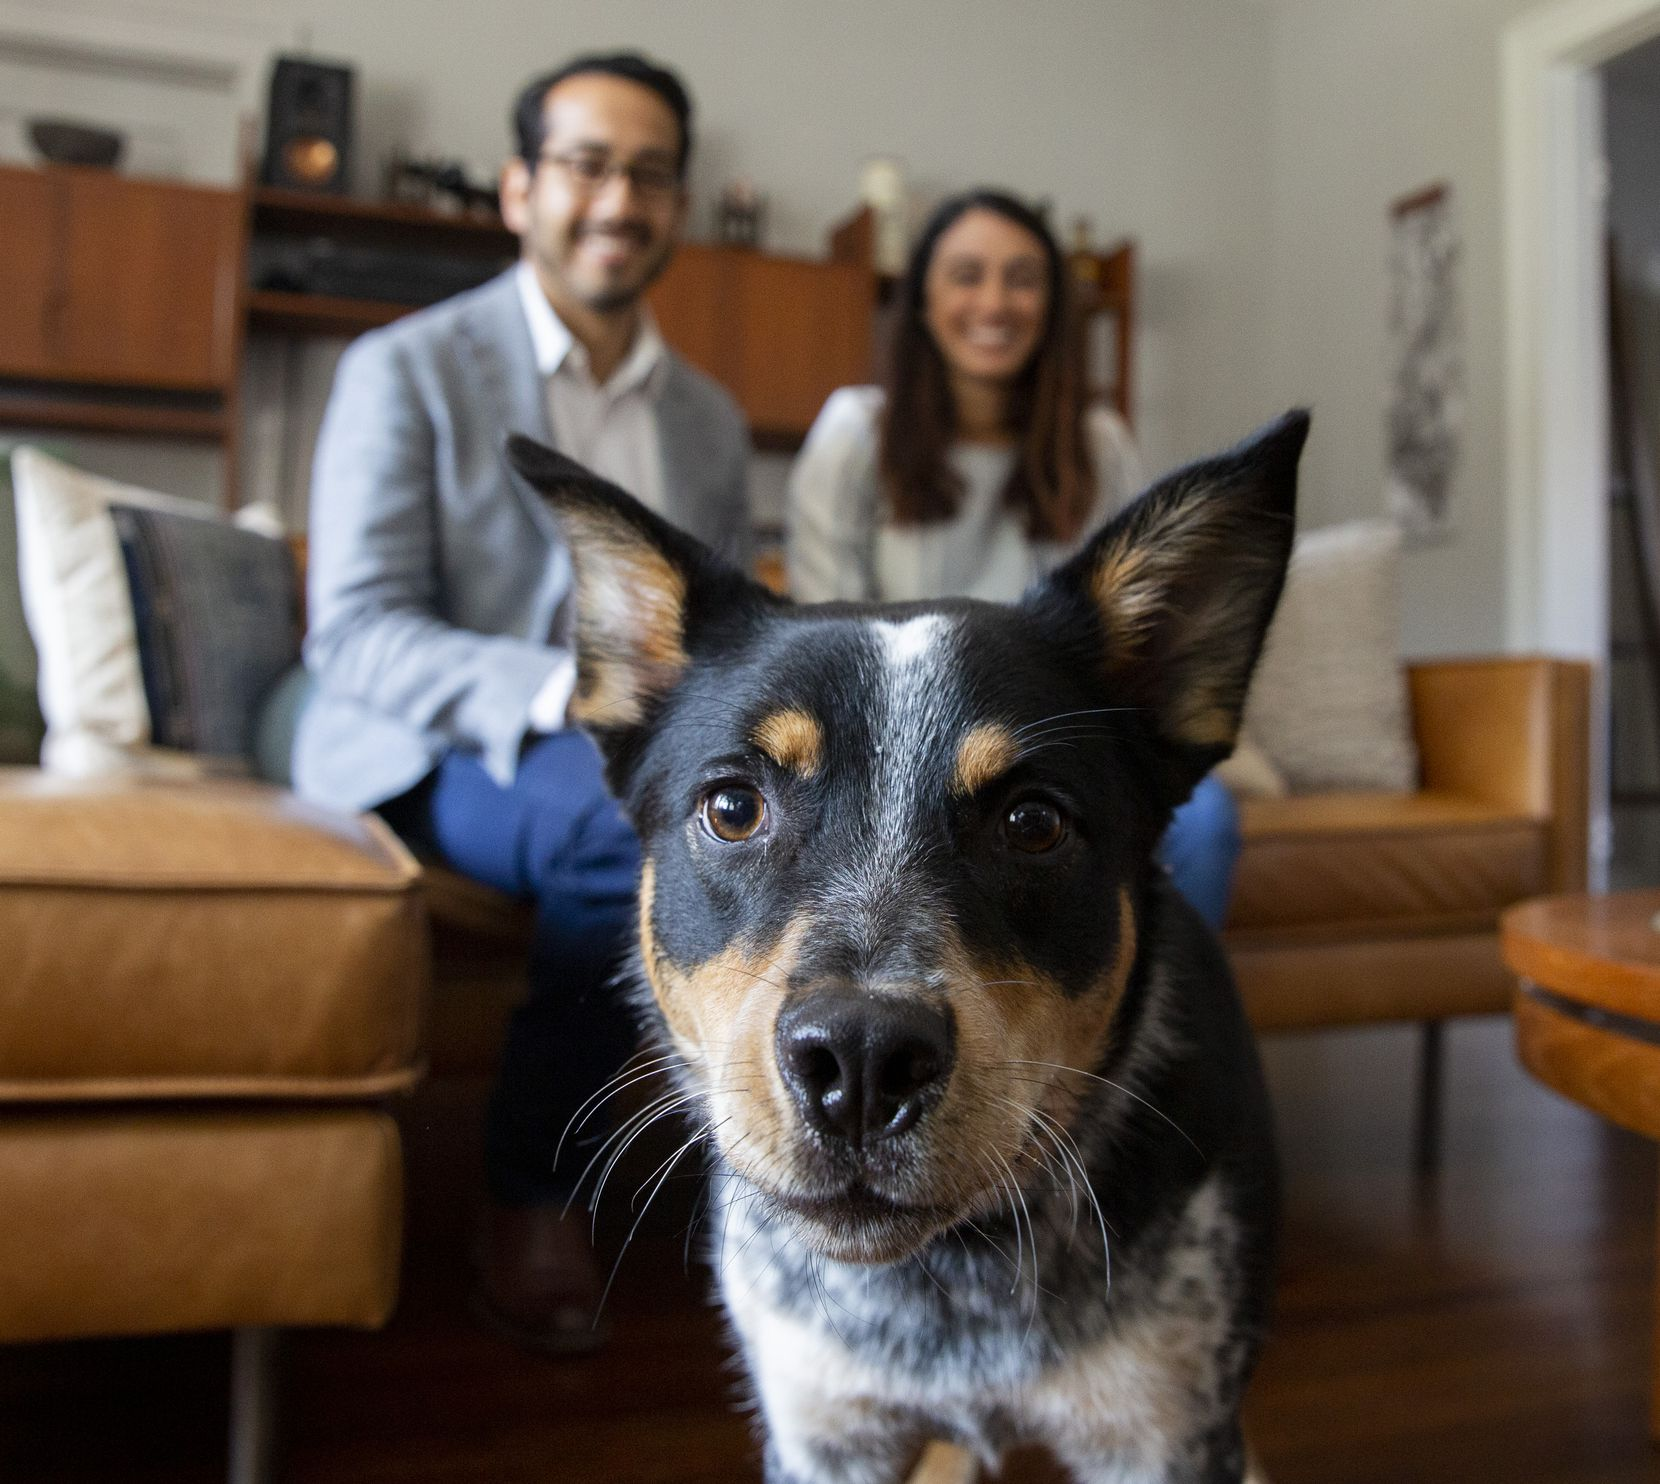 Nic Carmona (left) and Melissa Rodriguez watch their dog Luna get close to the camera on Friday, June 18, 2021, at their home in Dallas.